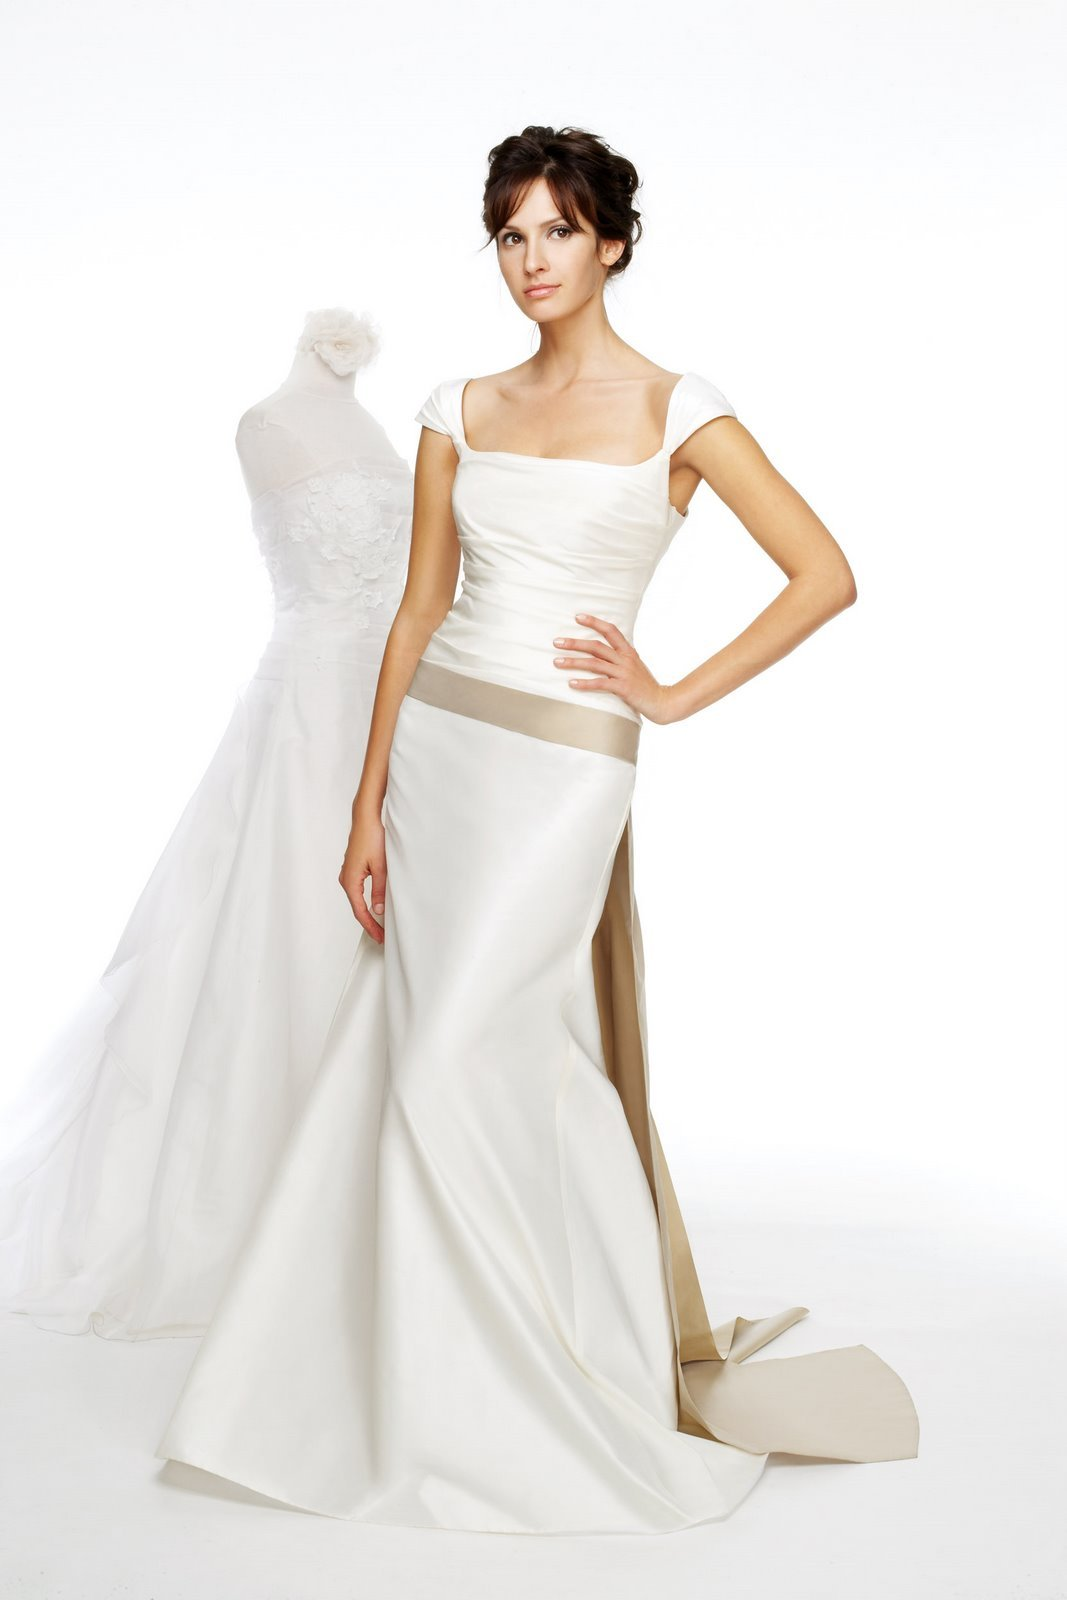 Wedding Dresses, Fashion, dress, Gown, Bridal, Jenny lee, 607